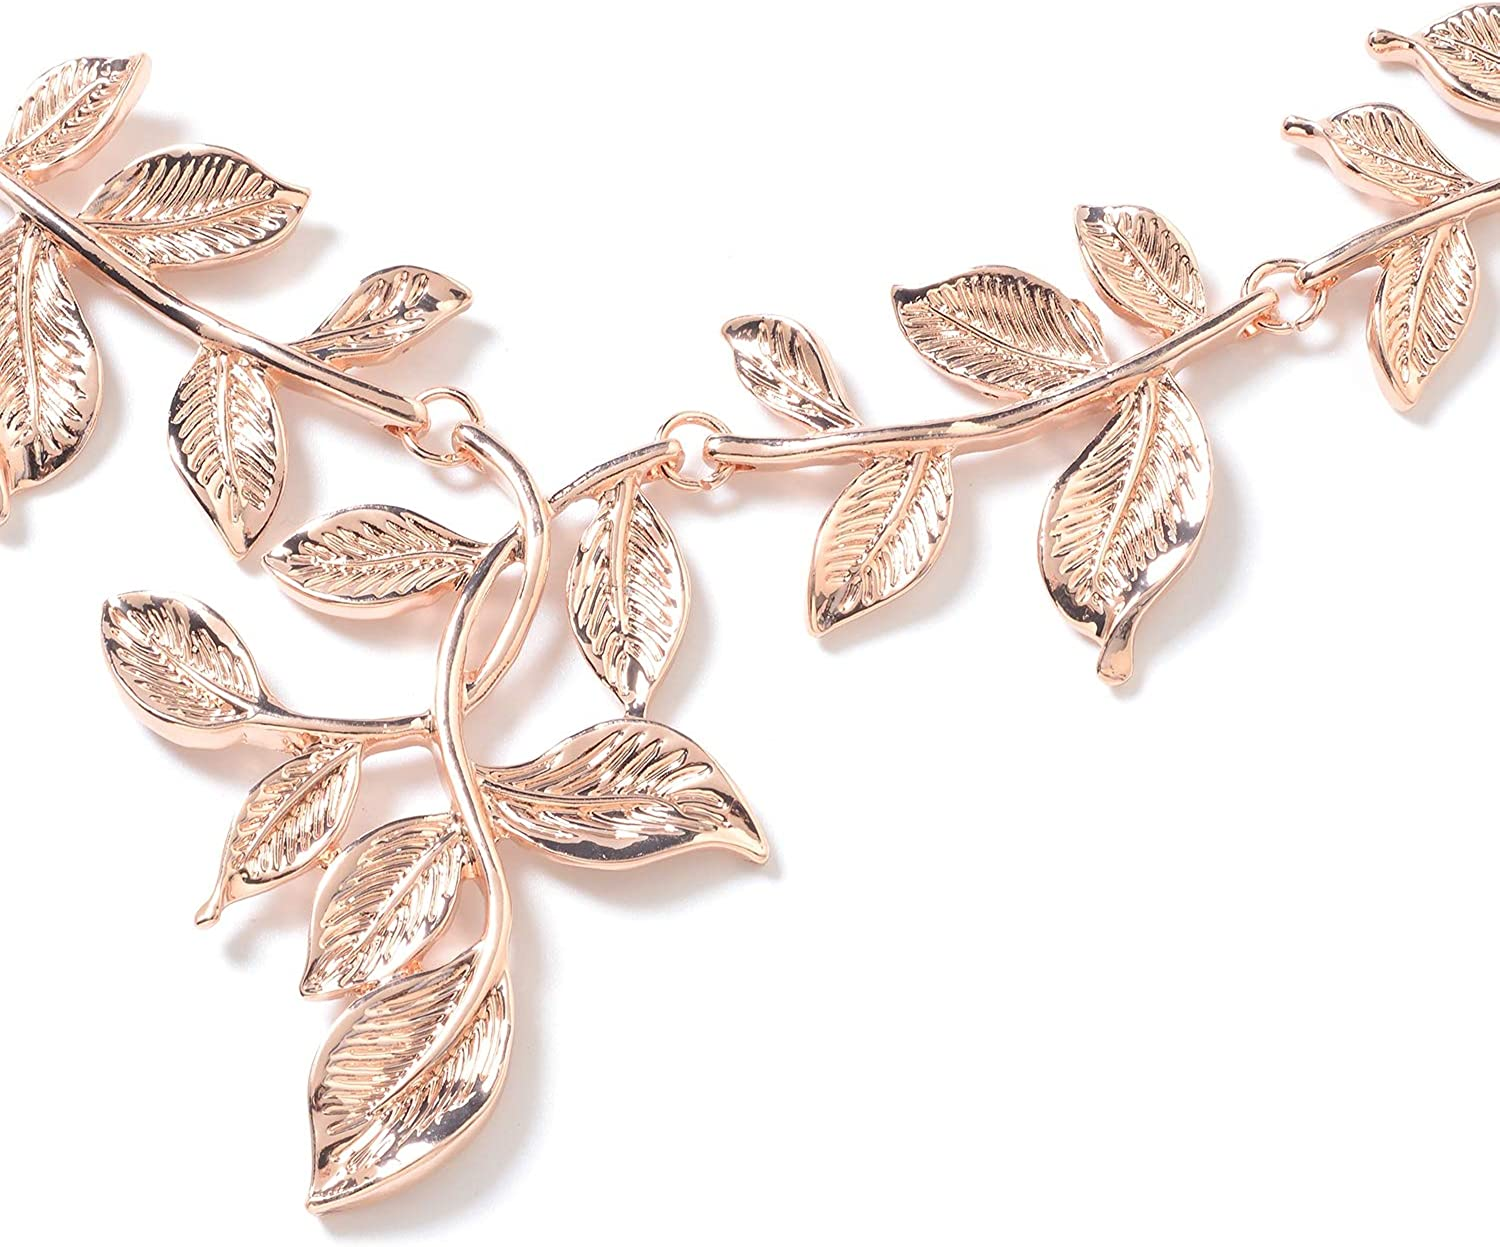 Shop LC ION Plated Yellow Rose Gold Stainless Steel Leaf Earrings Necklace for Women Fashion Costume Jewelry Gifts Set 22